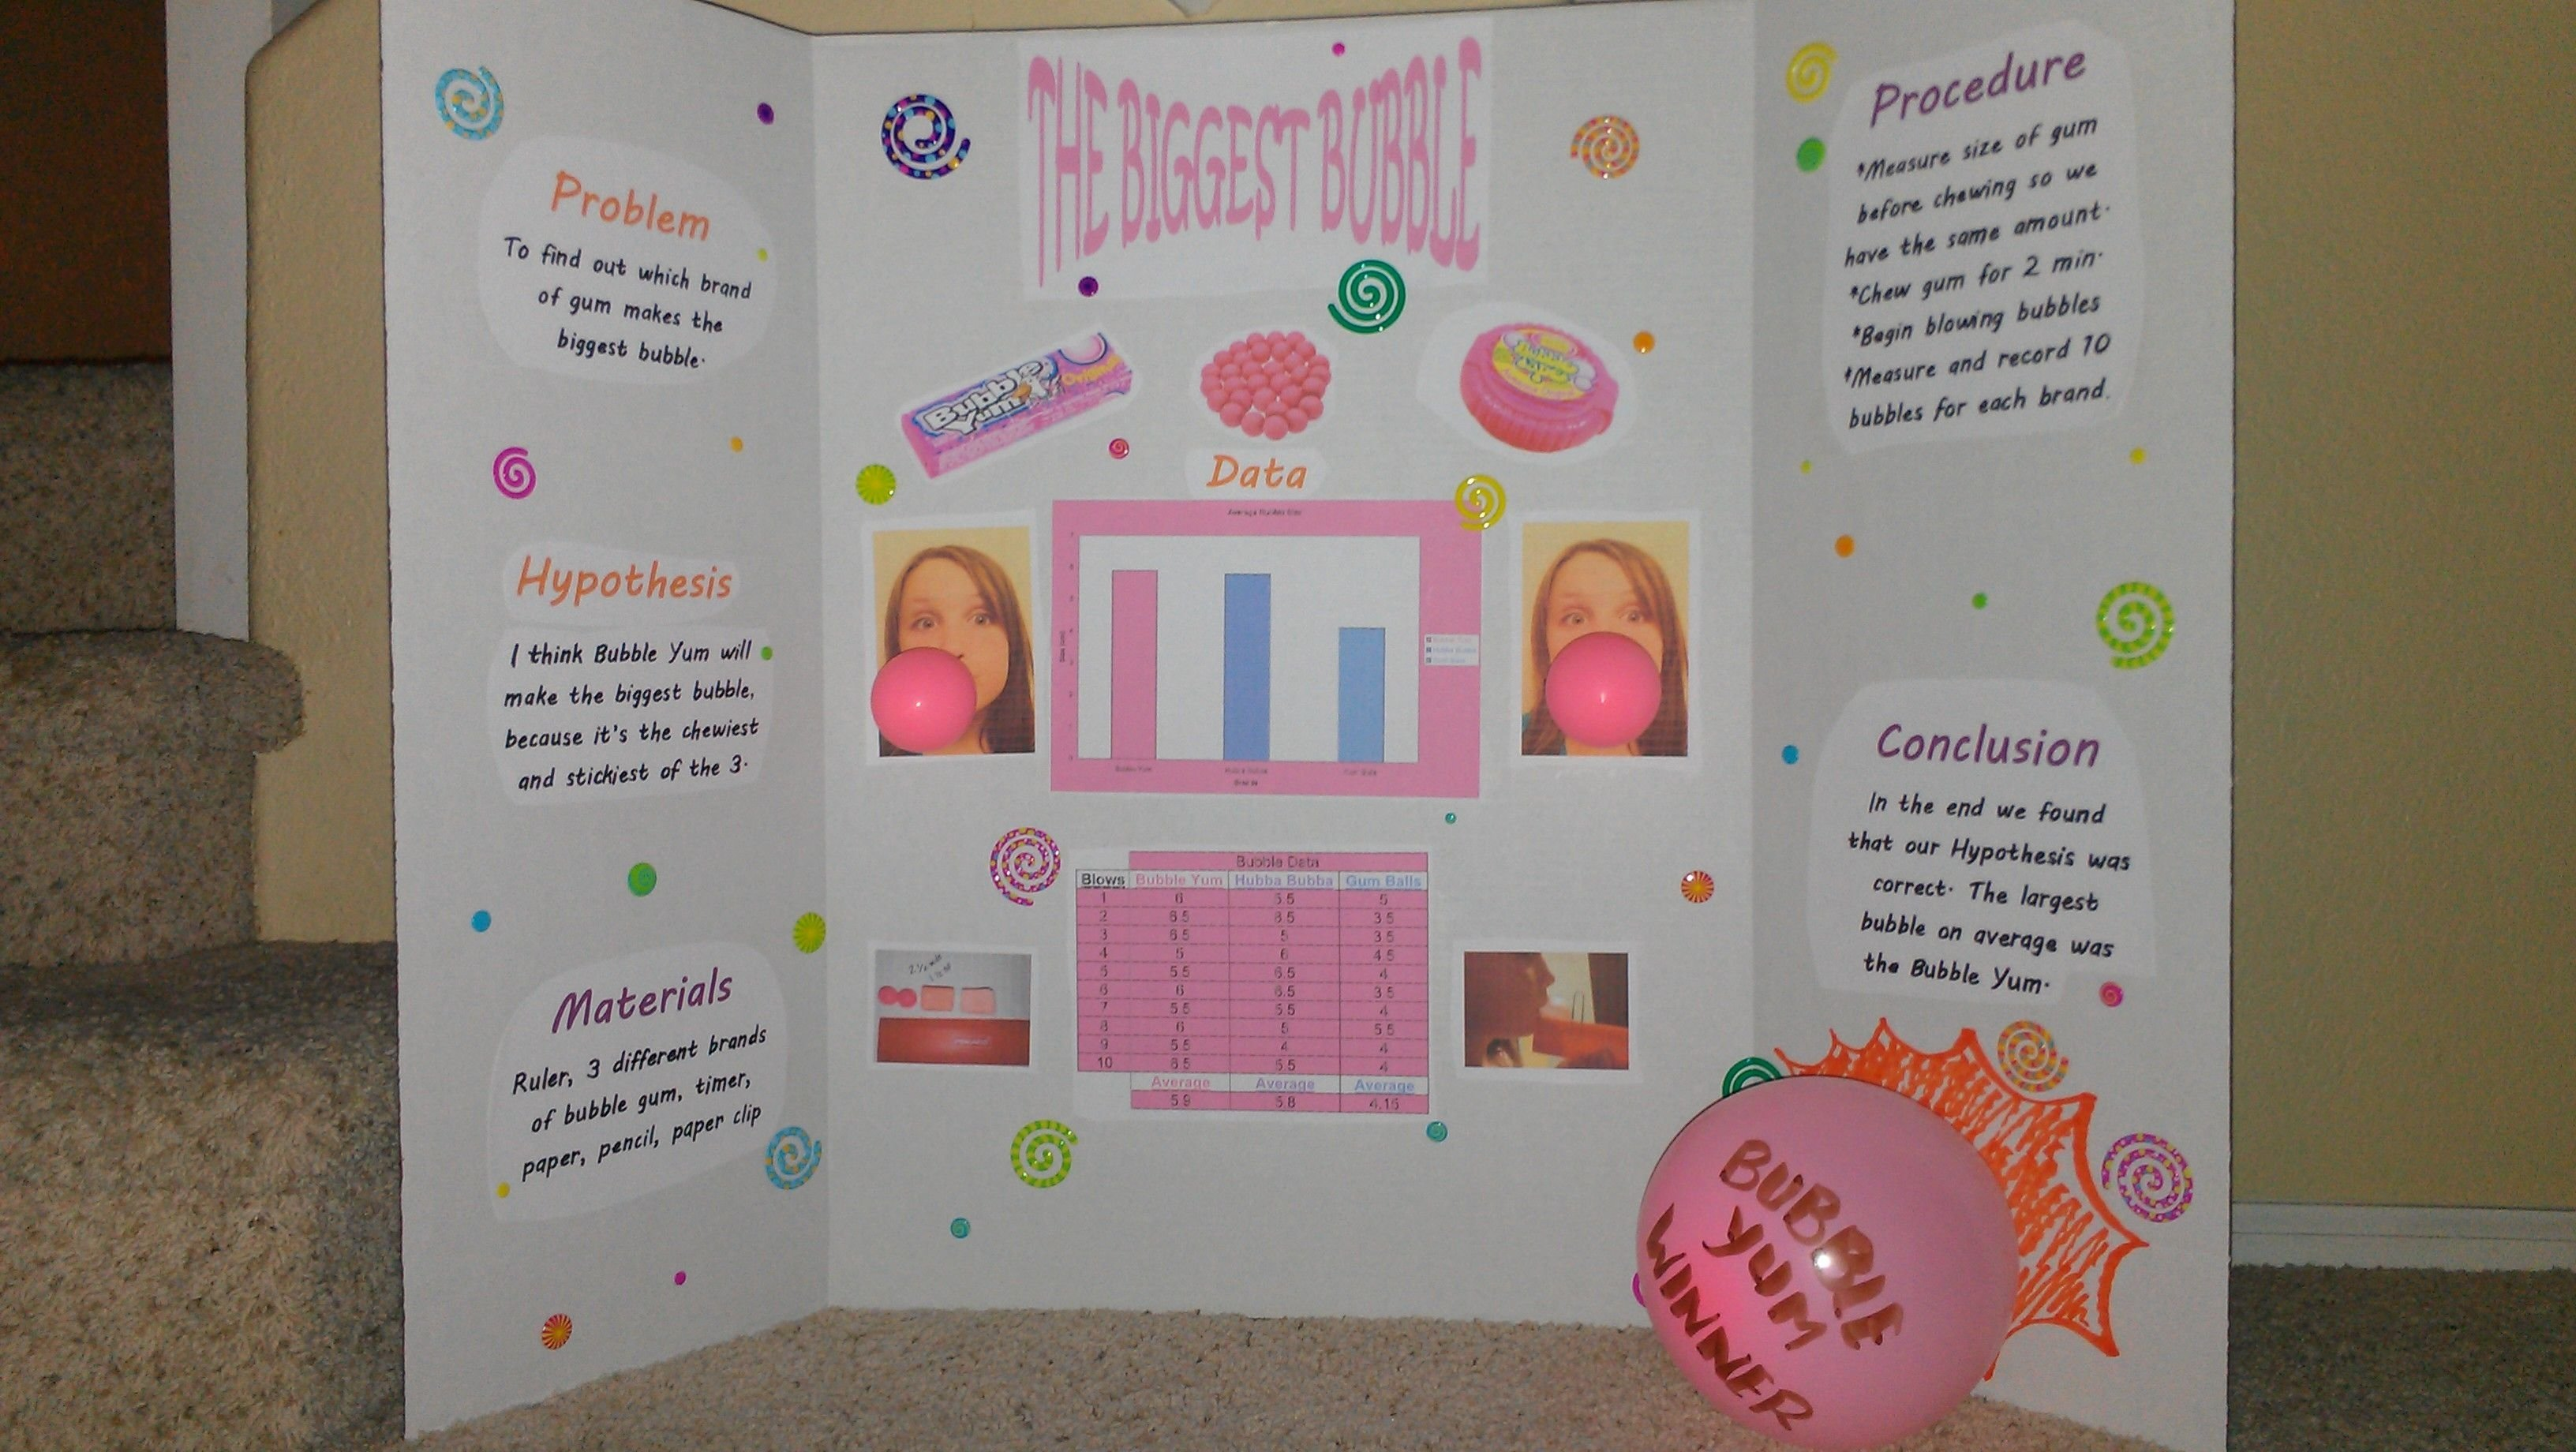 10 Fashionable Second Grade Science Project Ideas my daughters science project won 1st place 2nd grade the biggest 8 2020